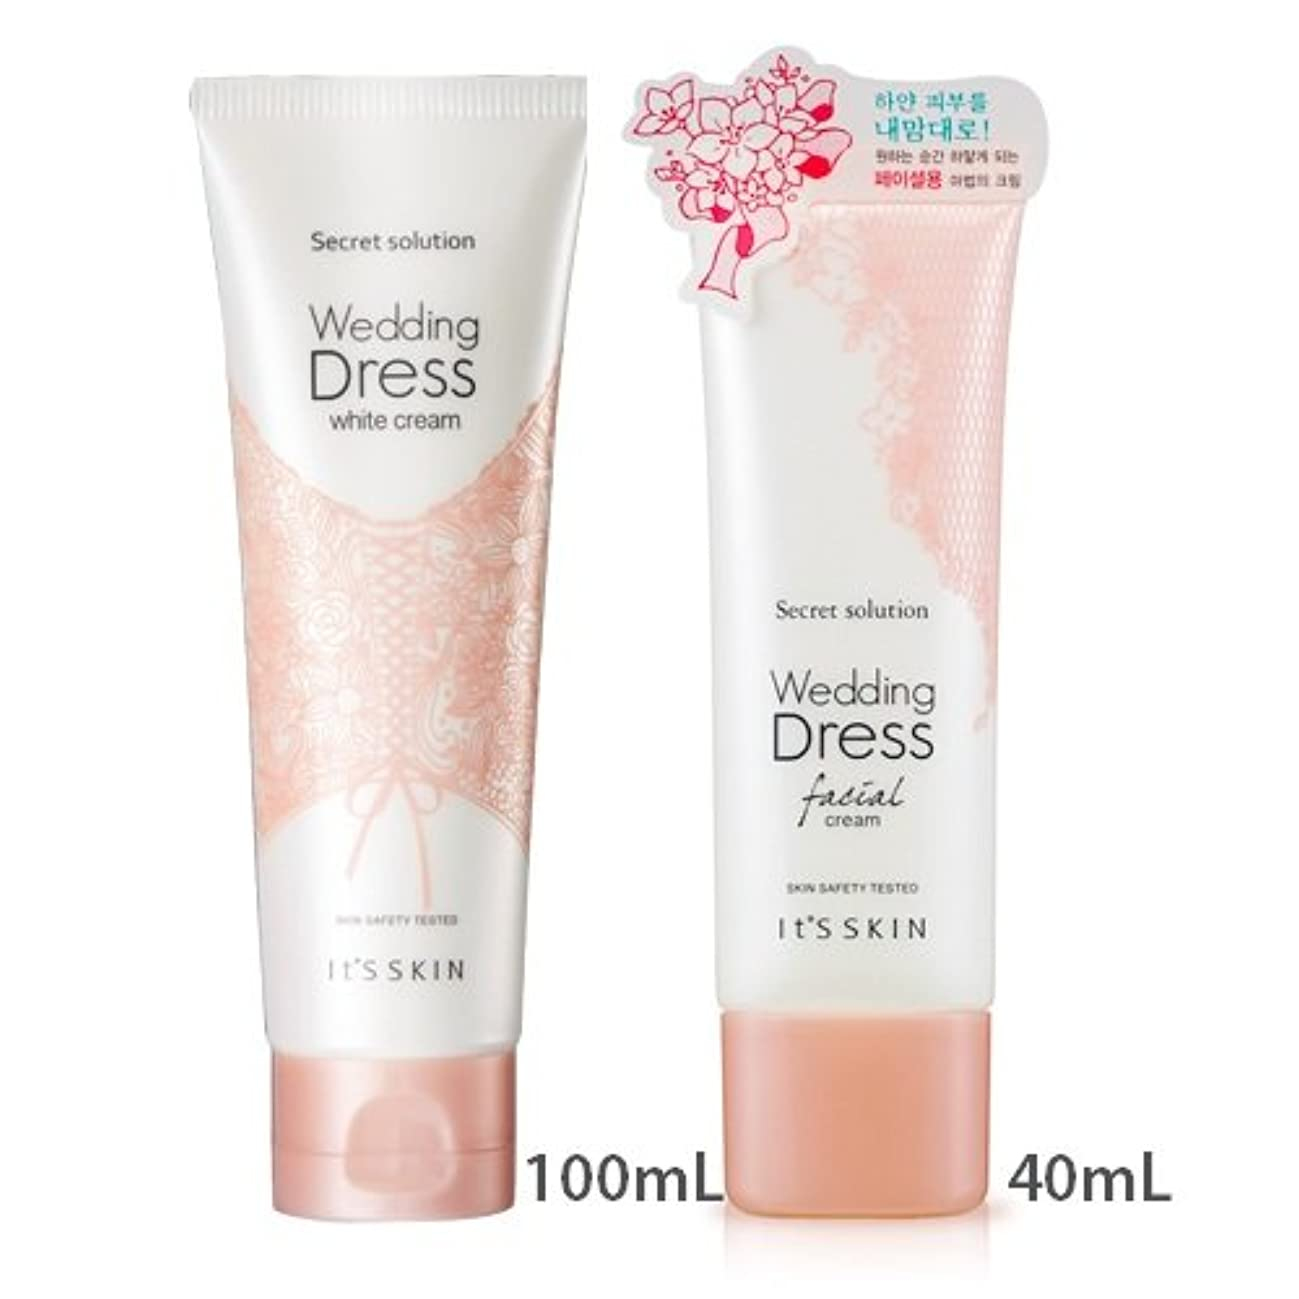 検体逆説お願いします[1+1] It's skin Secret Solution Wedding Dress Facial Cream 40mL + Secret Solution Wedding Dress Cream 100mL イッツスキン...